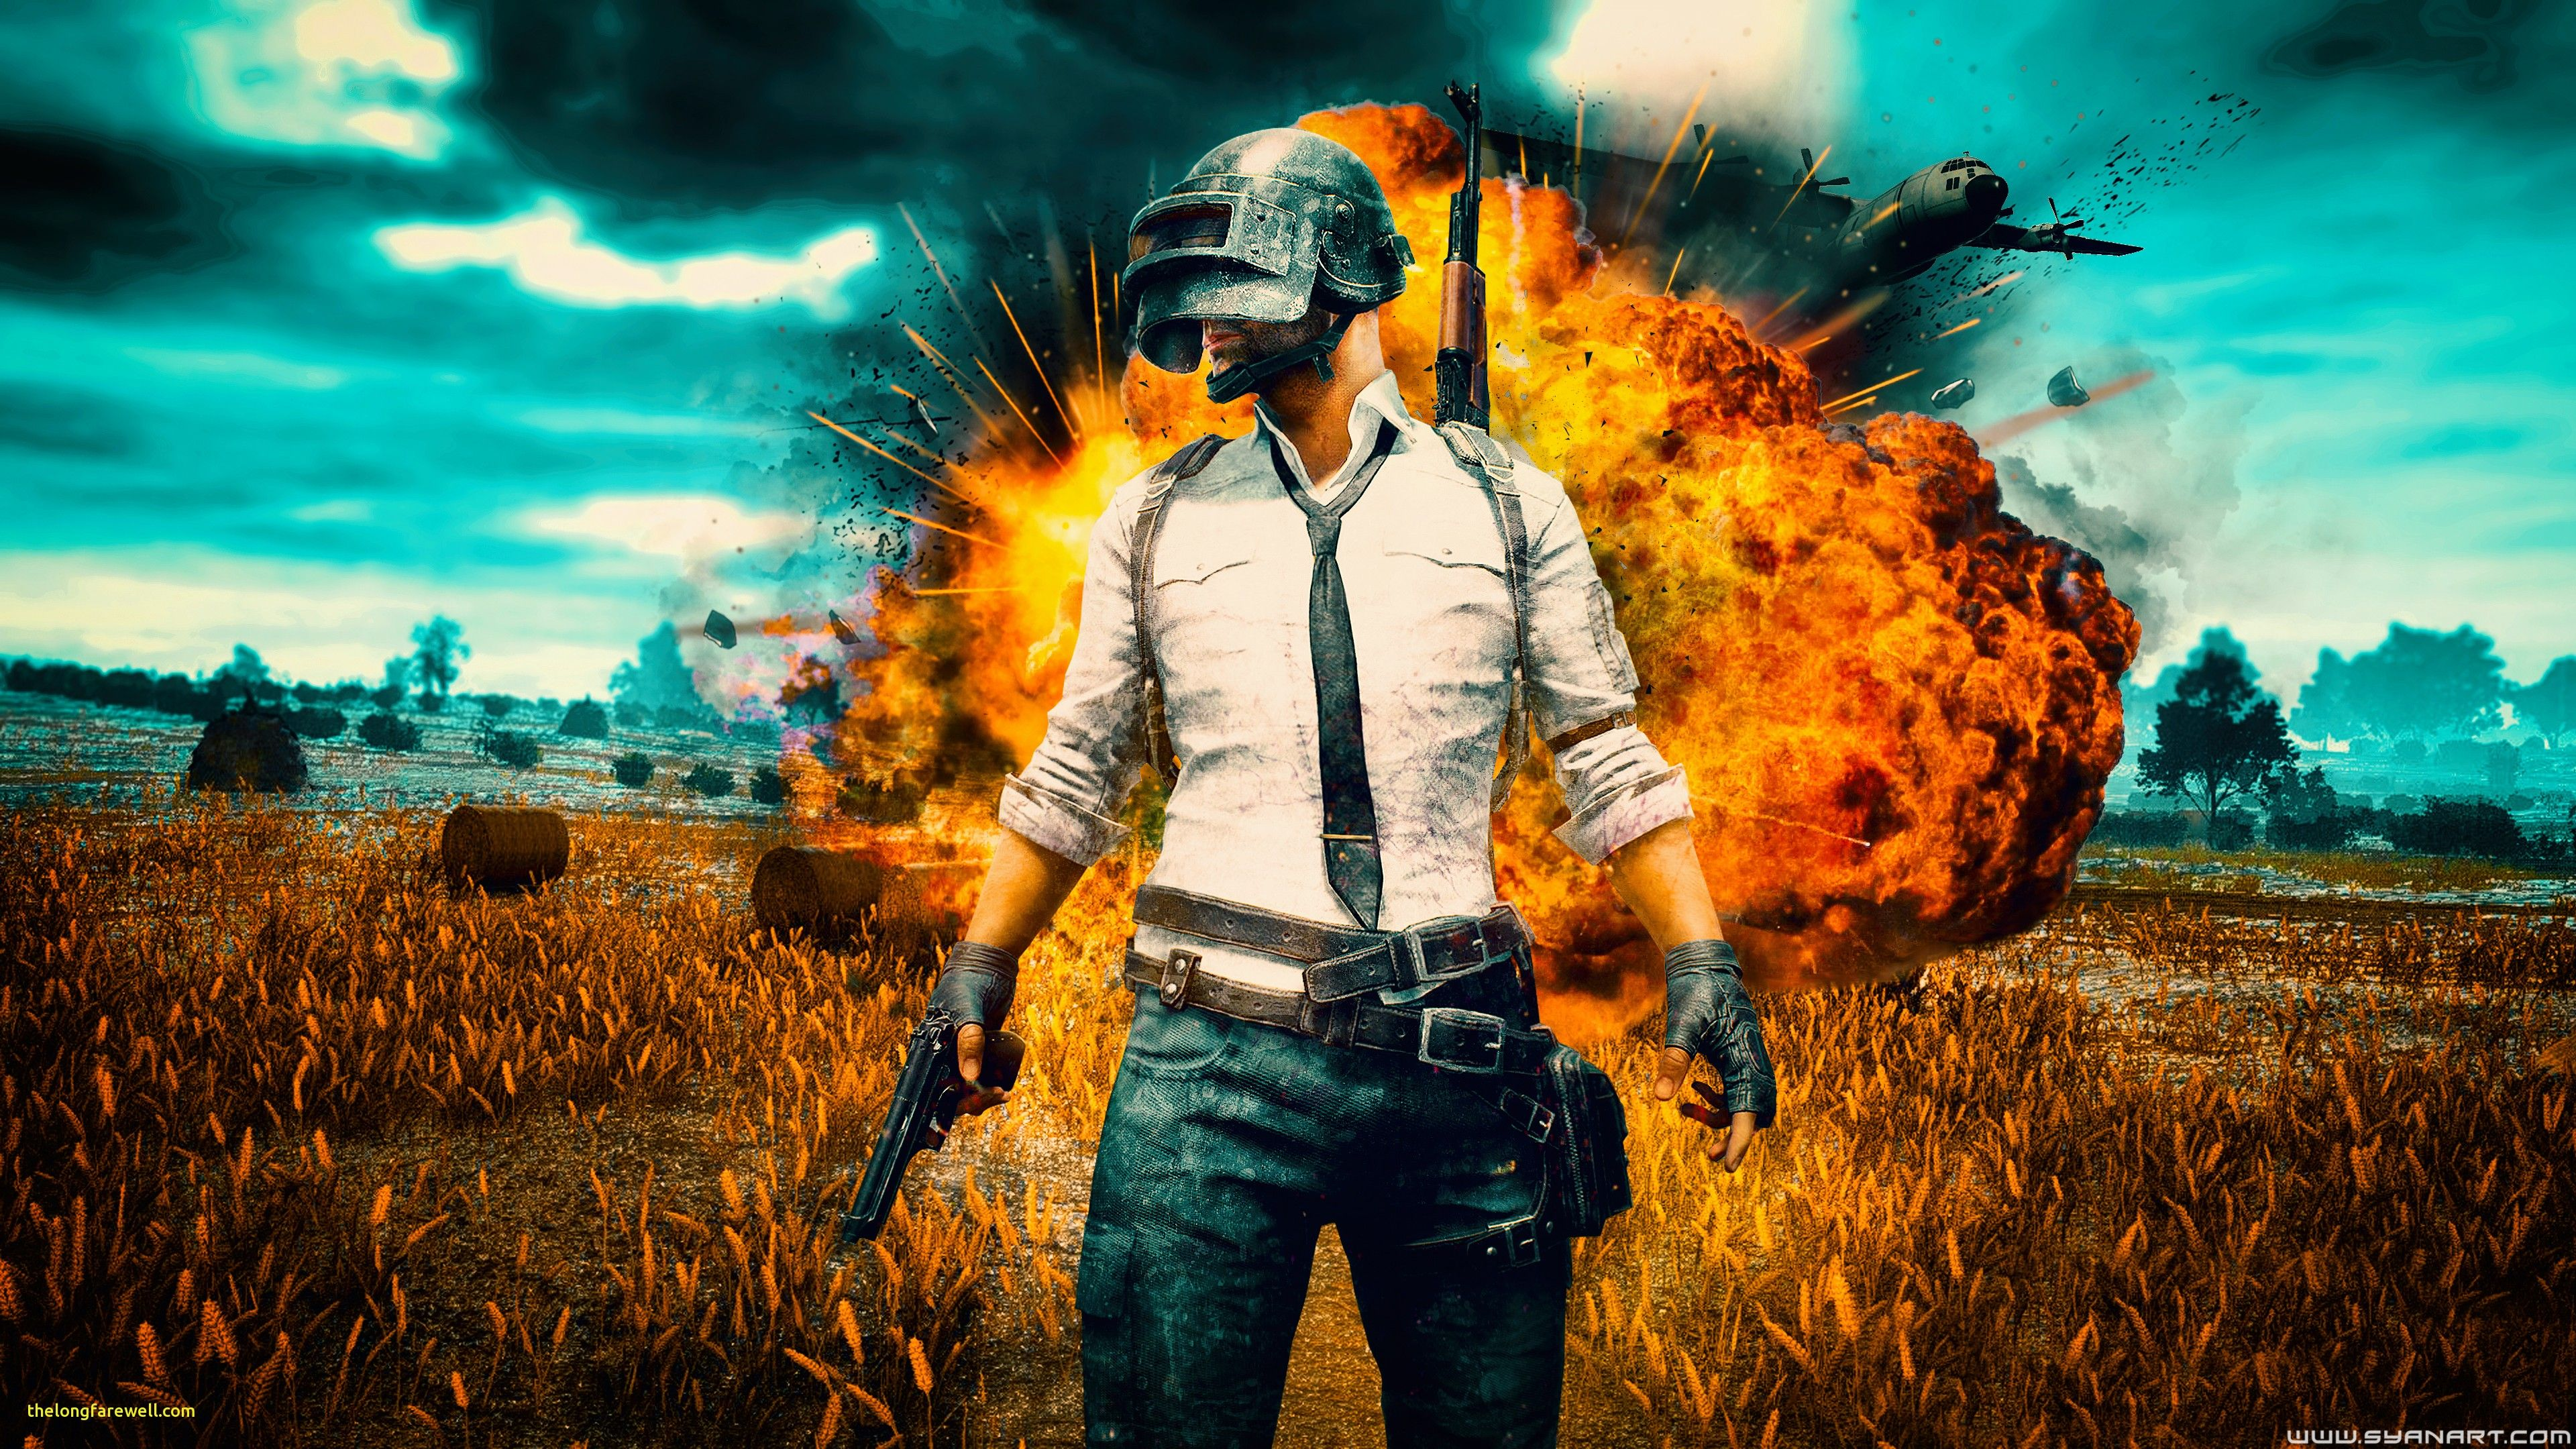 1366x768 Pubg Android Game 4k 1366x768 Resolution Hd 4k: PUBG 4K Wallpapers